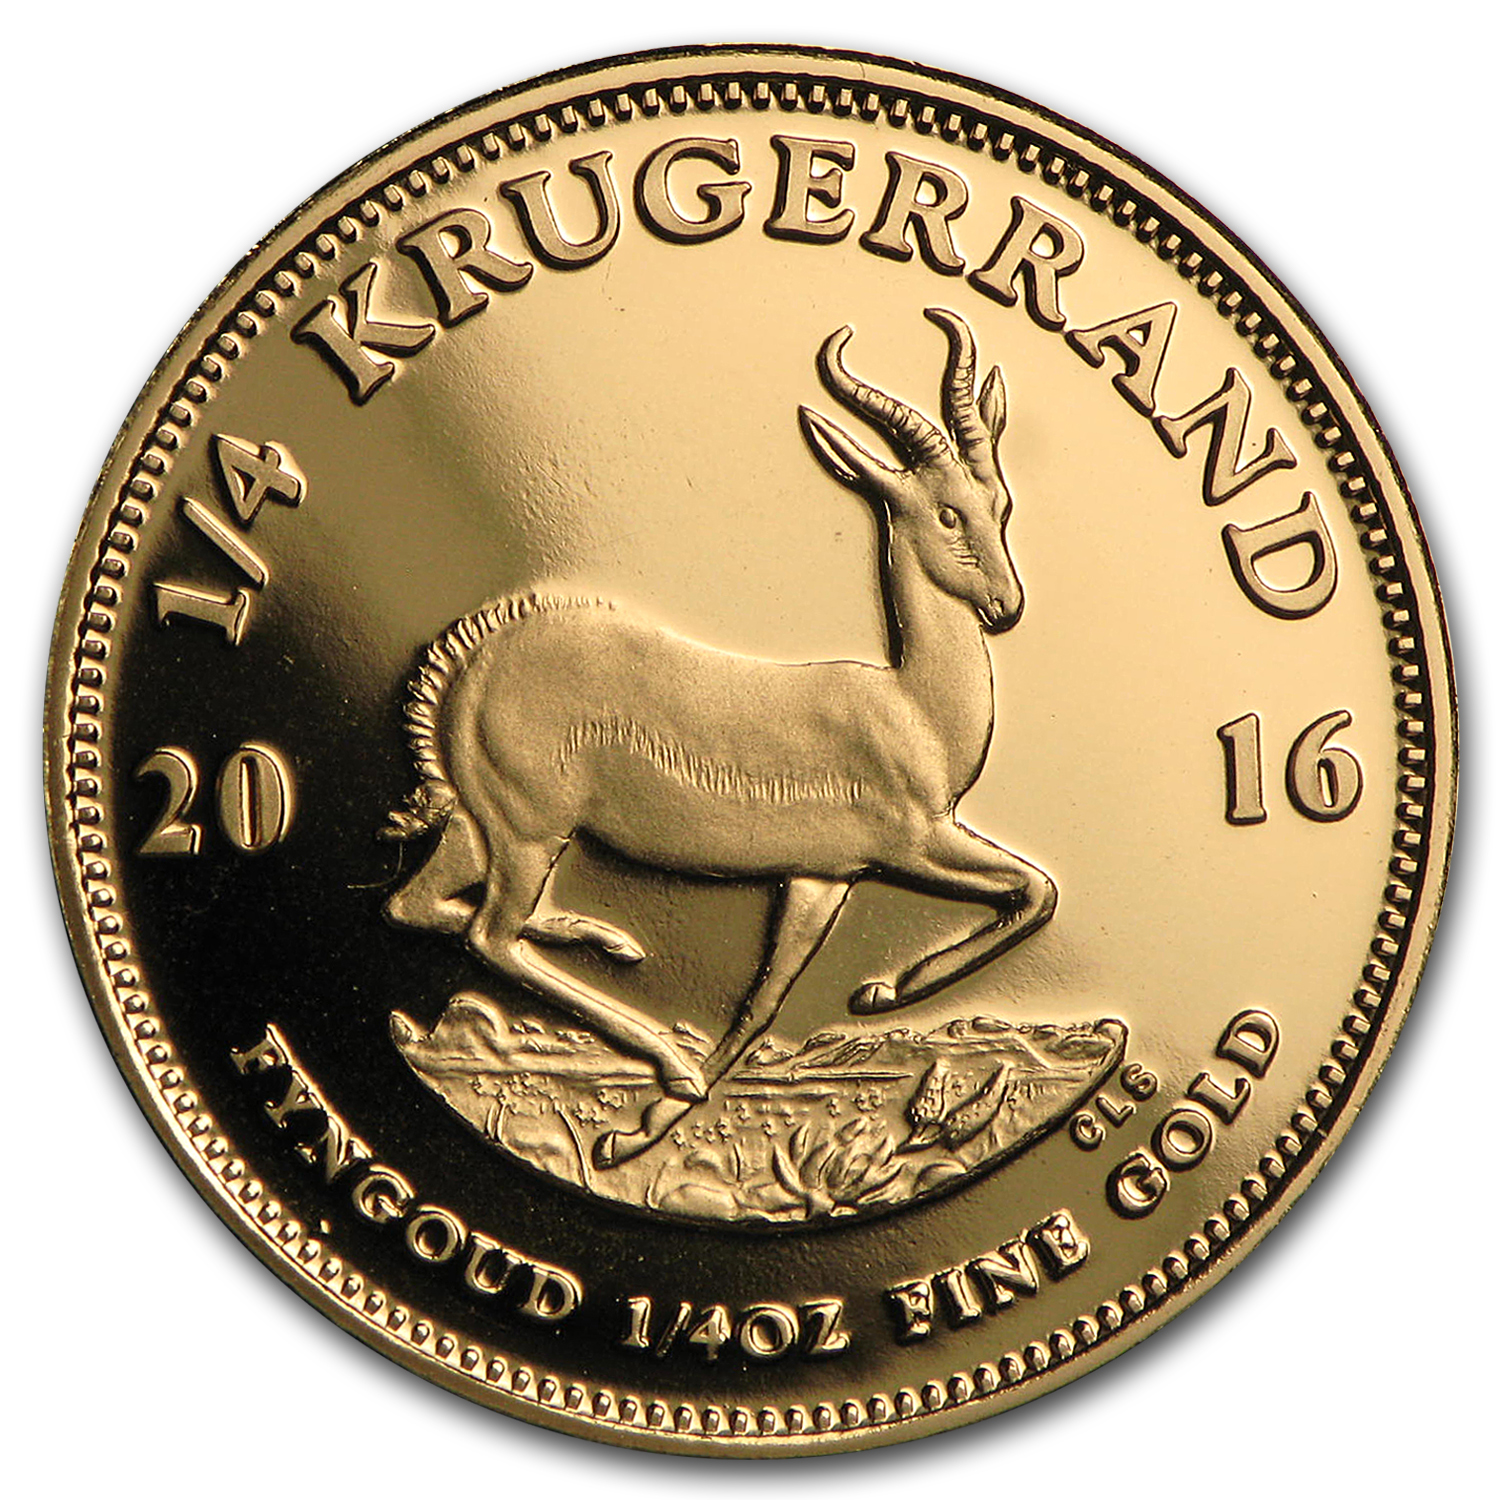 2016 South Africa 1/4 oz Proof Gold Krugerrand